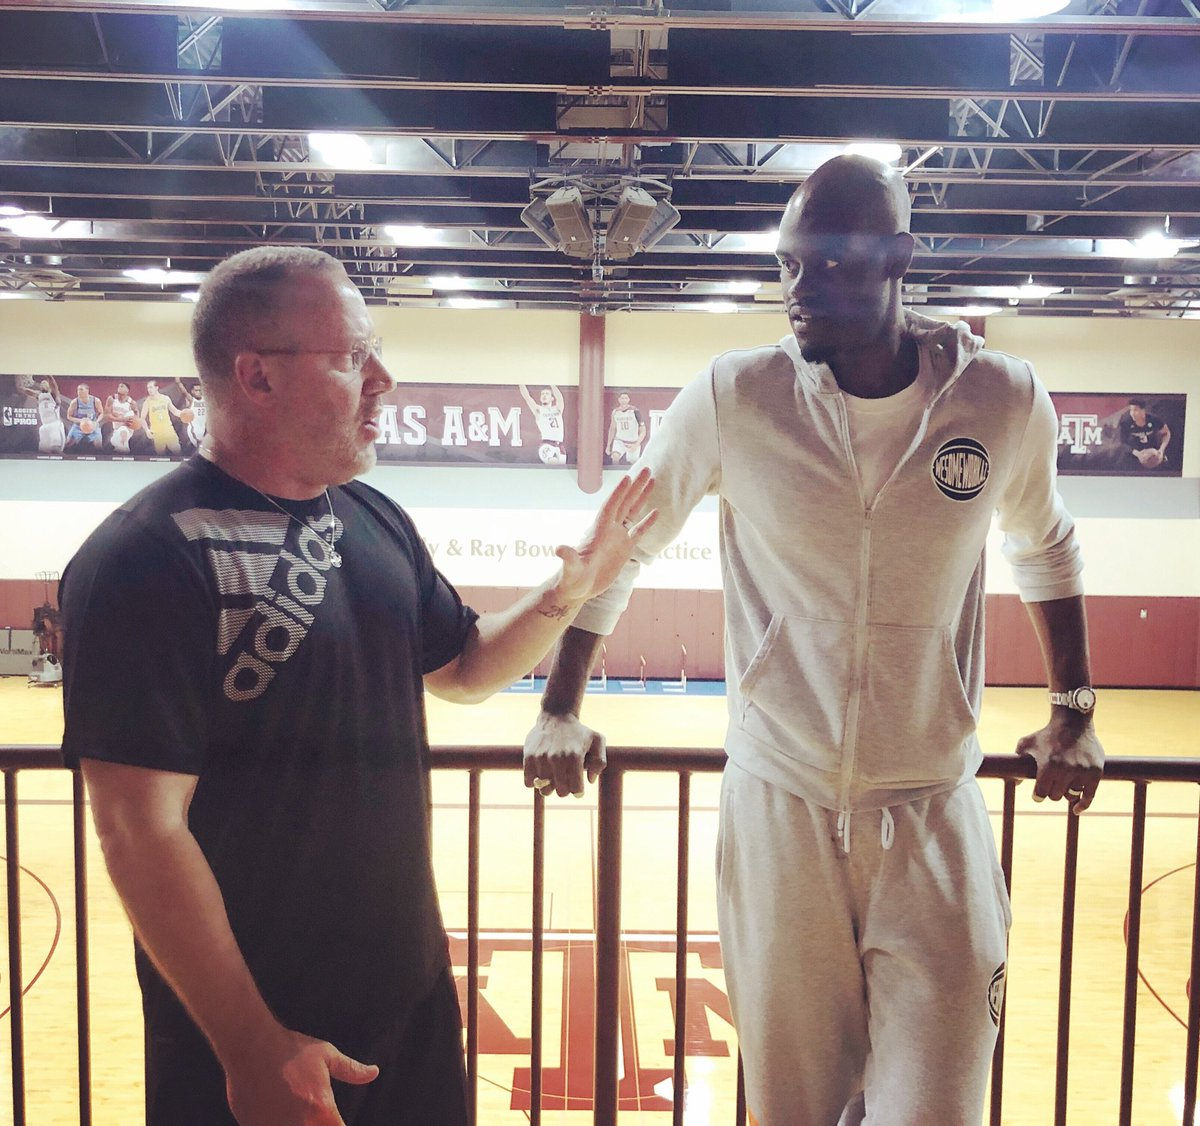 It was great catching up with the catalyst of my career @teamcoachbuzz.  <br>http://pic.twitter.com/zuaiBgX8ne